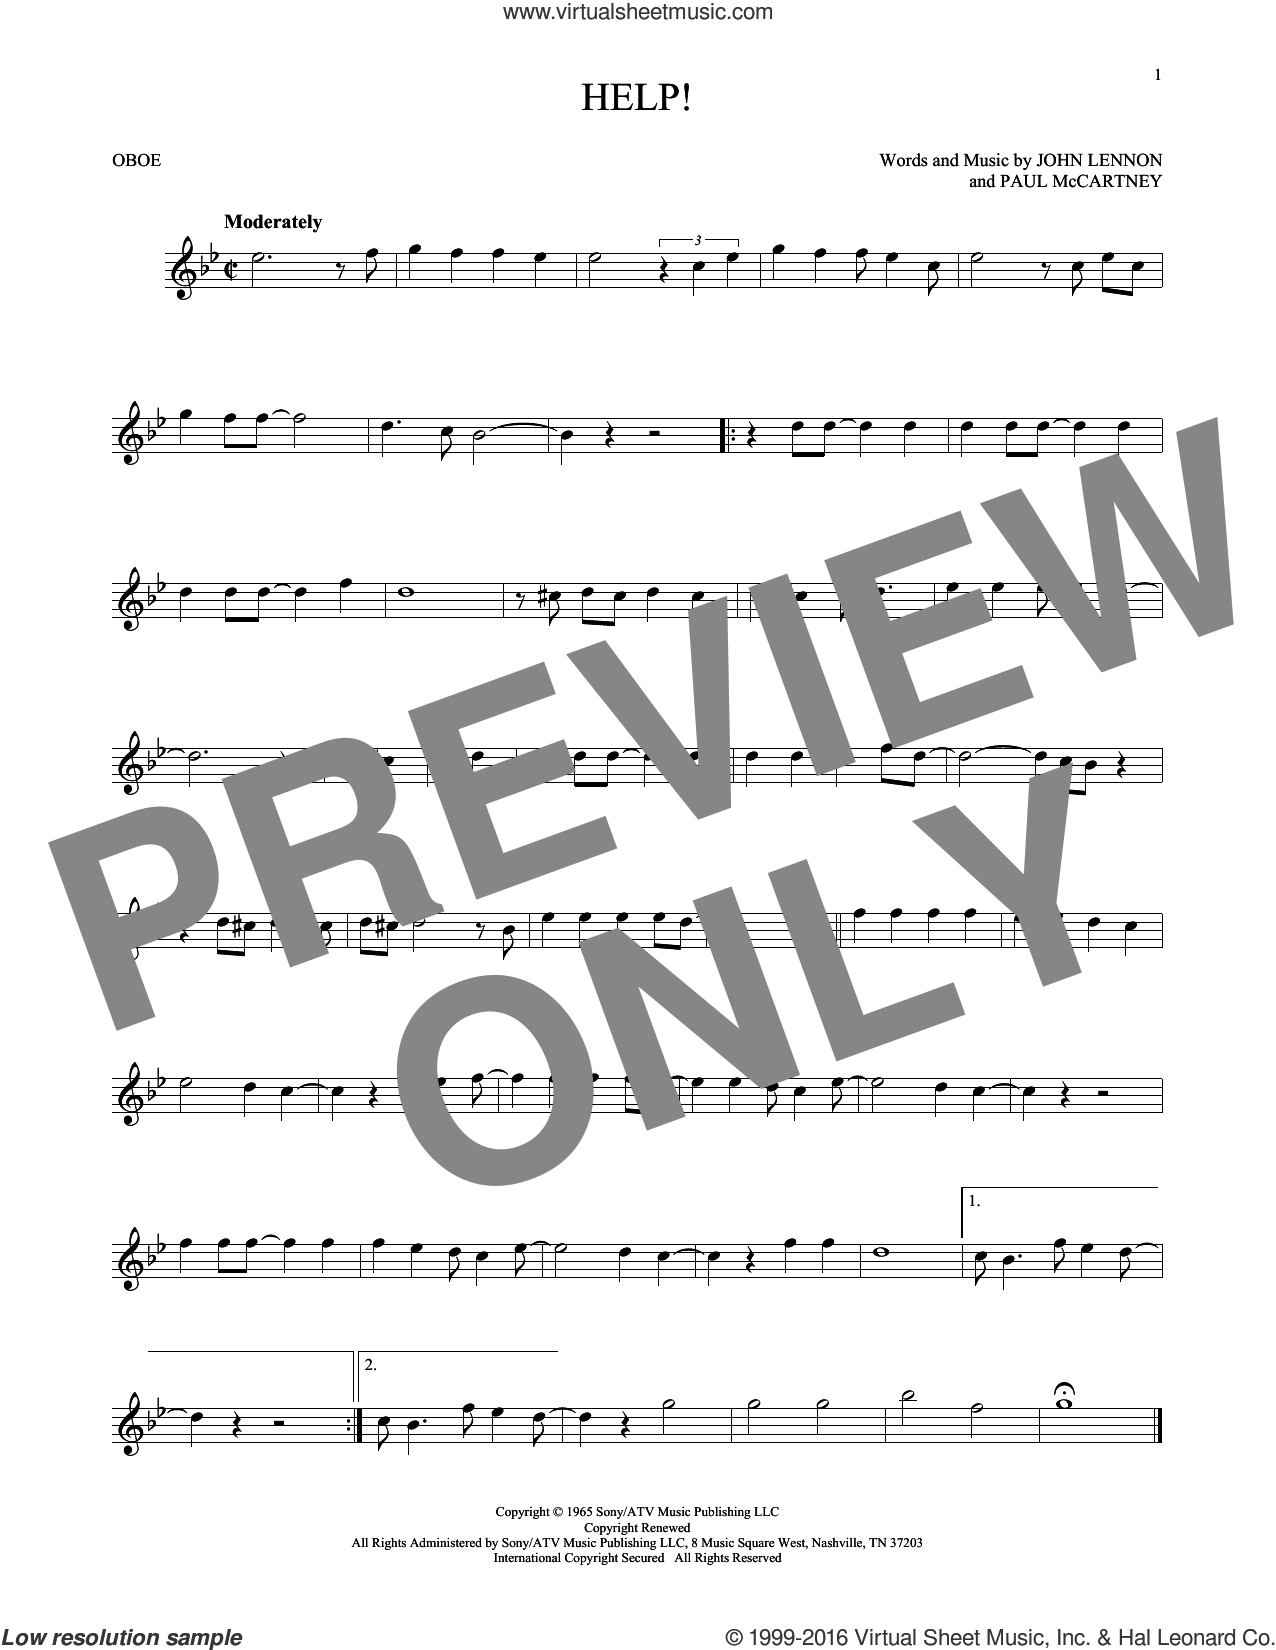 Help! sheet music for oboe solo by The Beatles, John Lennon and Paul McCartney, intermediate